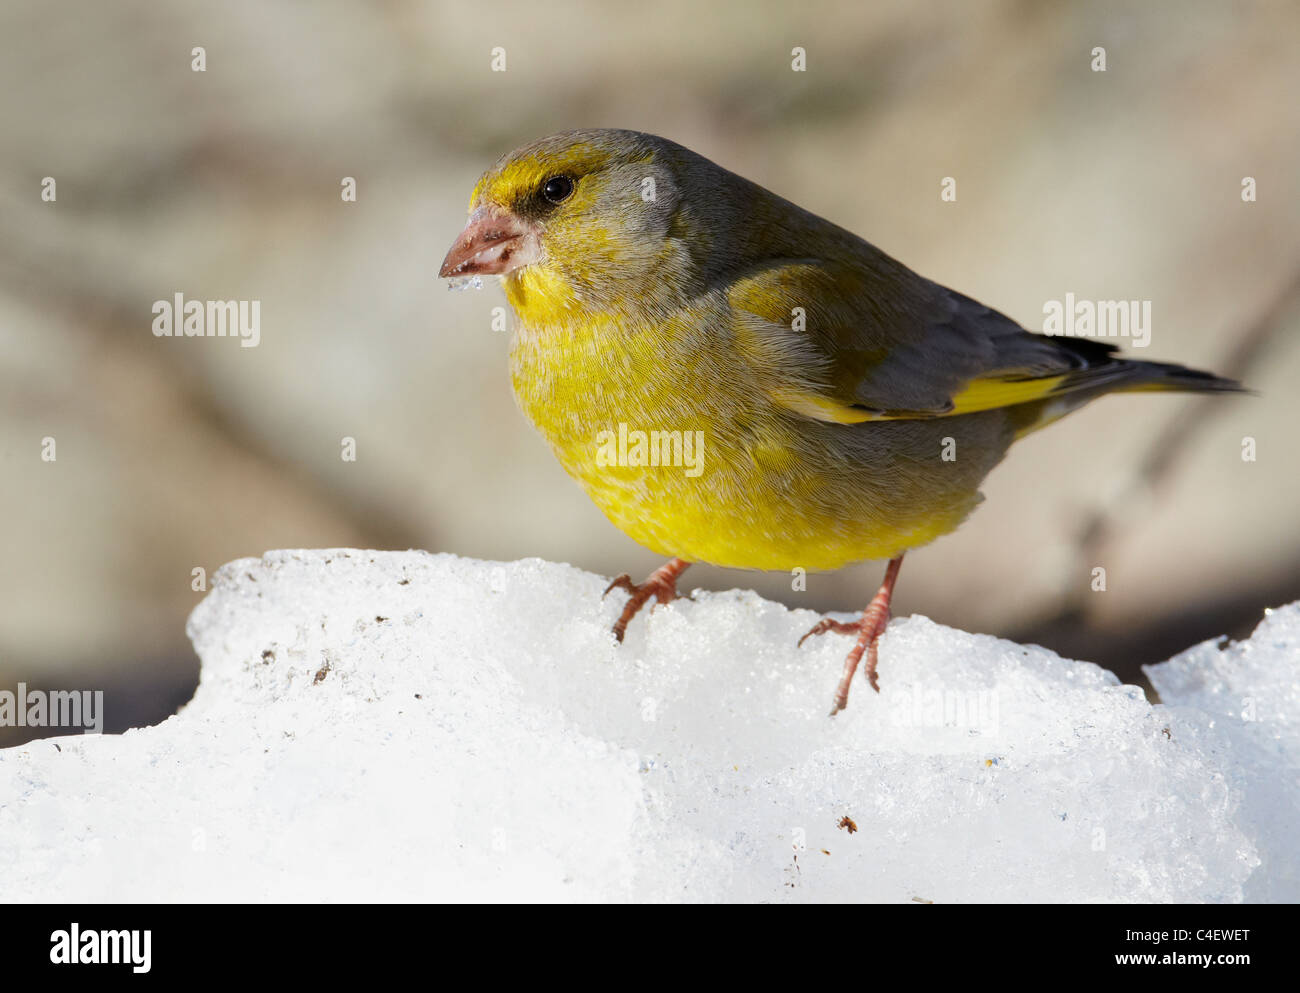 Greenfinch (Carduelis chloris) standing on snow. Finland. - Stock Image